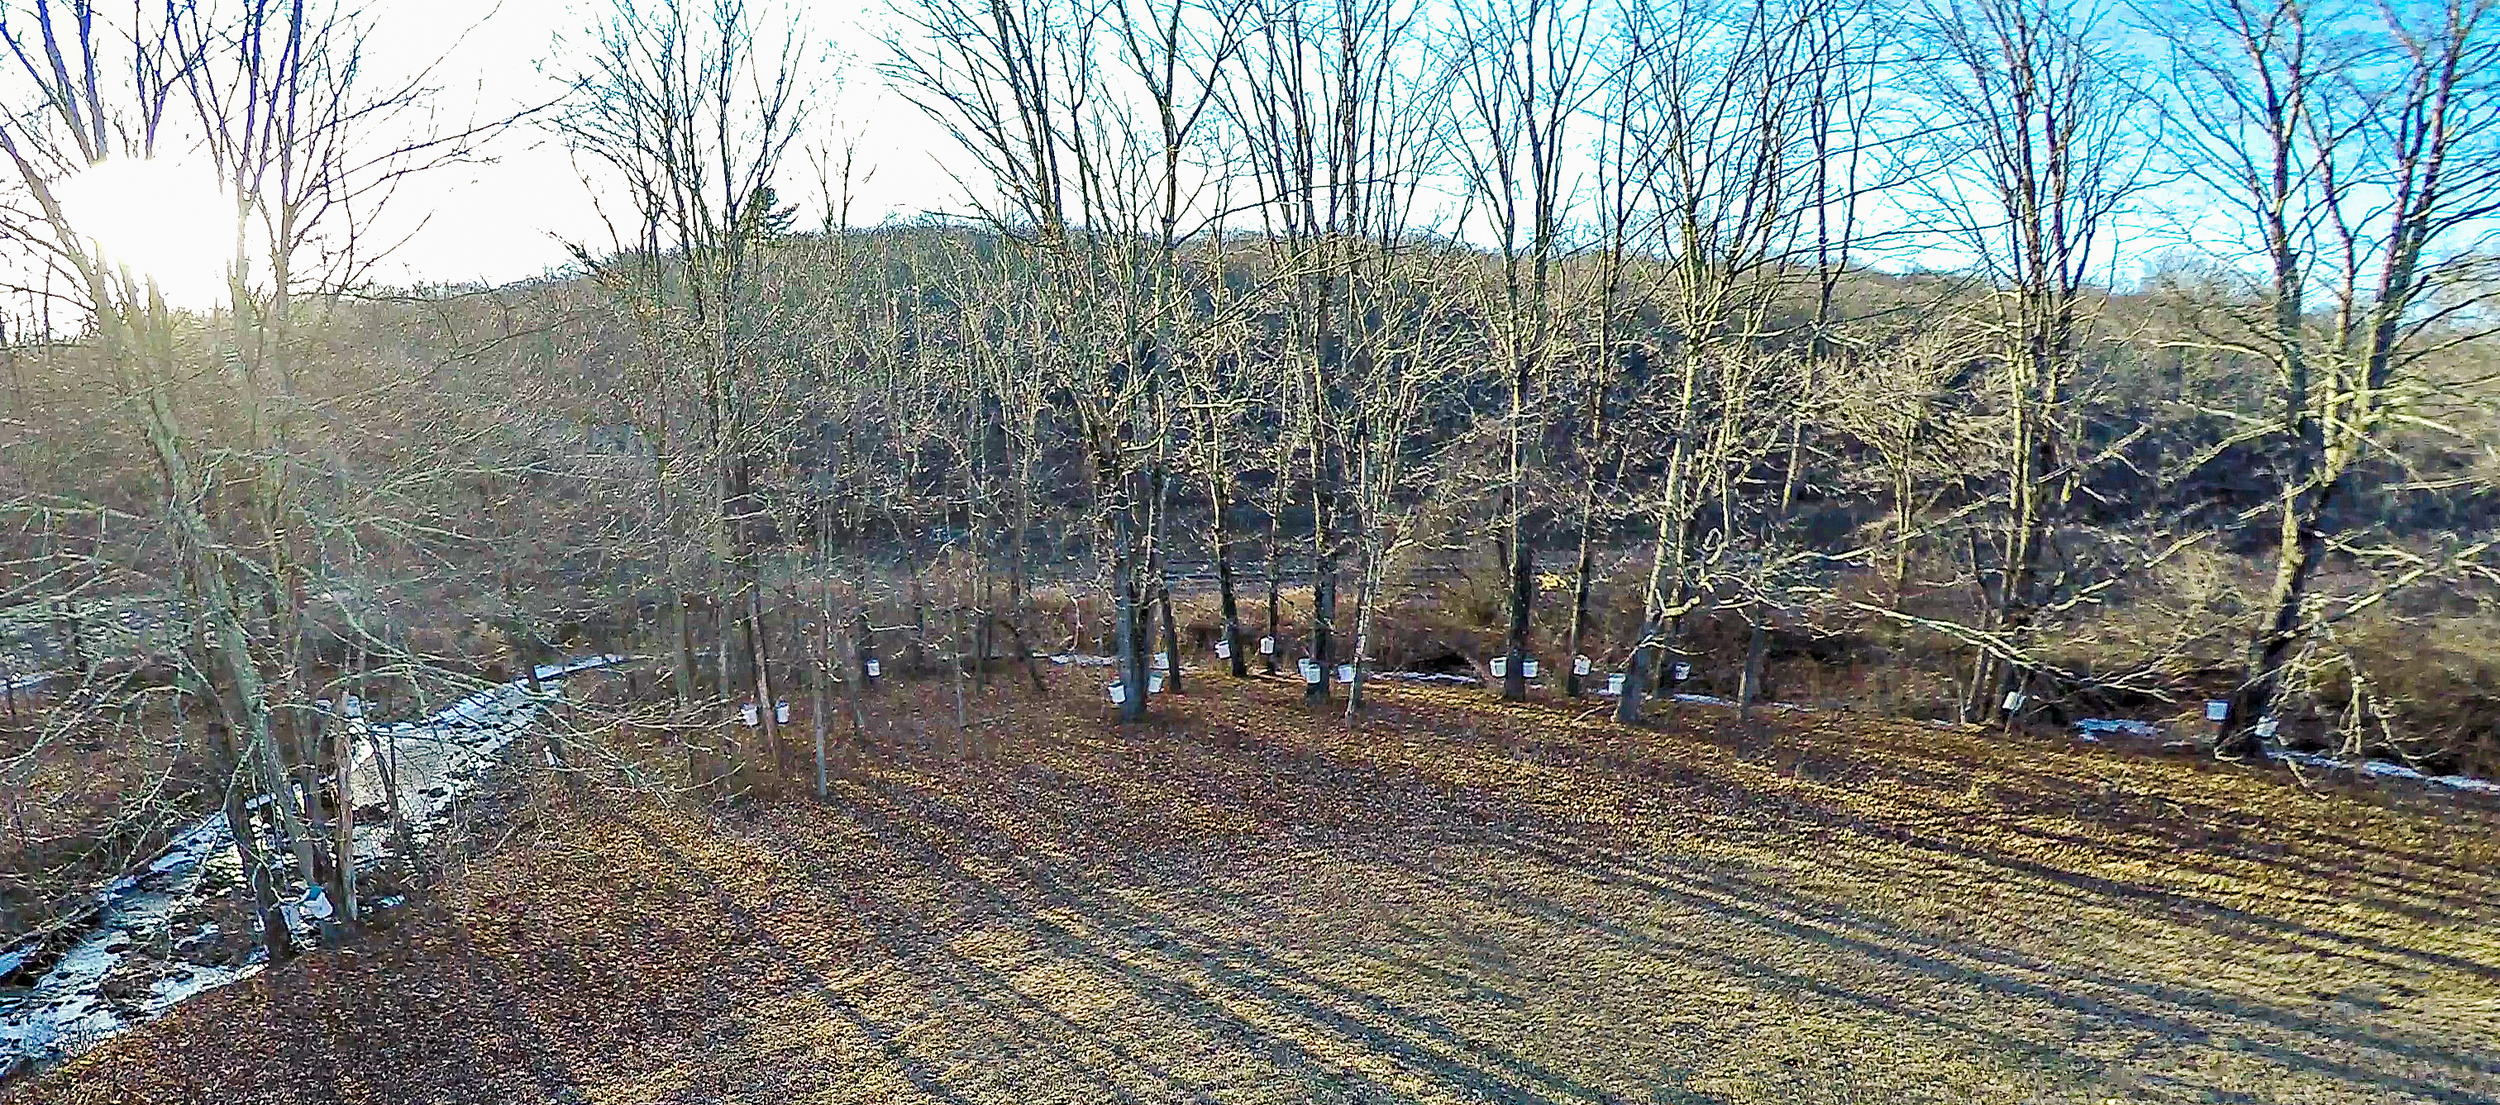 Sugar Bush, a gathering of sugar maples that are tapped and gathered to create the worlds best sweetner, our pure maple syrup.